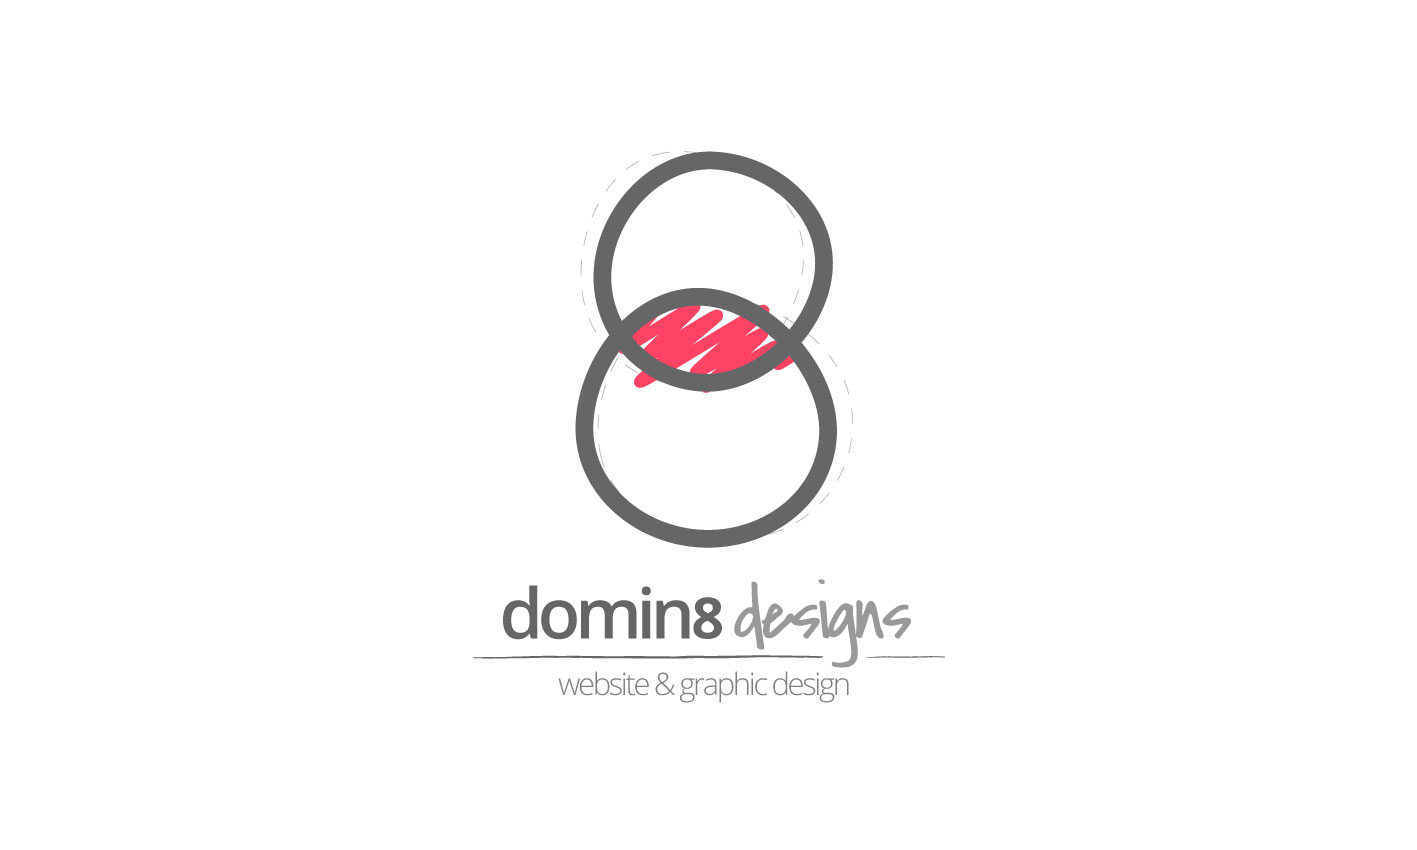 The first iteration of the Domin8 Designs logo.